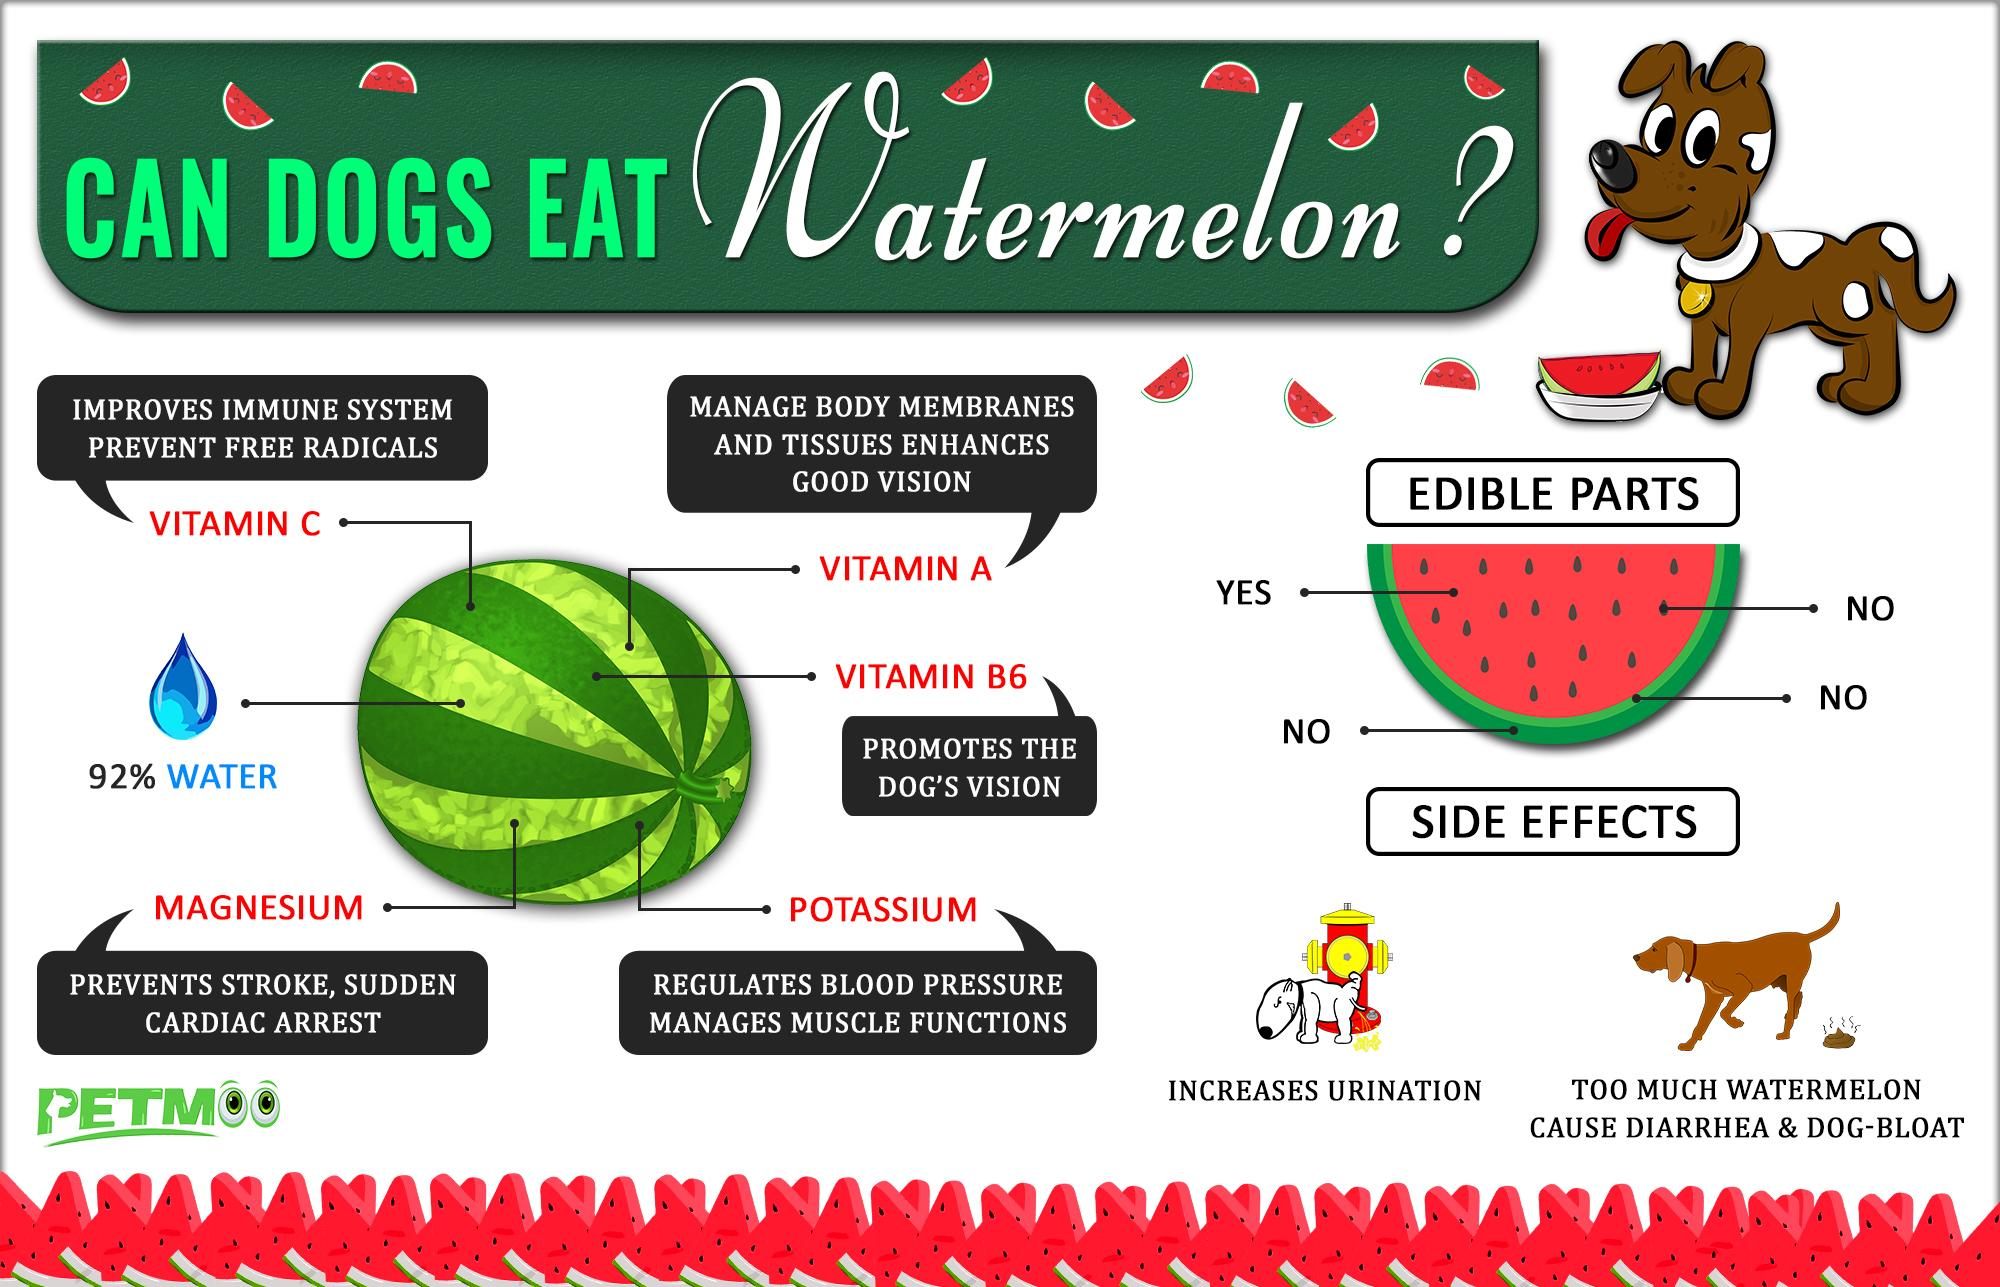 Is watermelon safe For Dogs